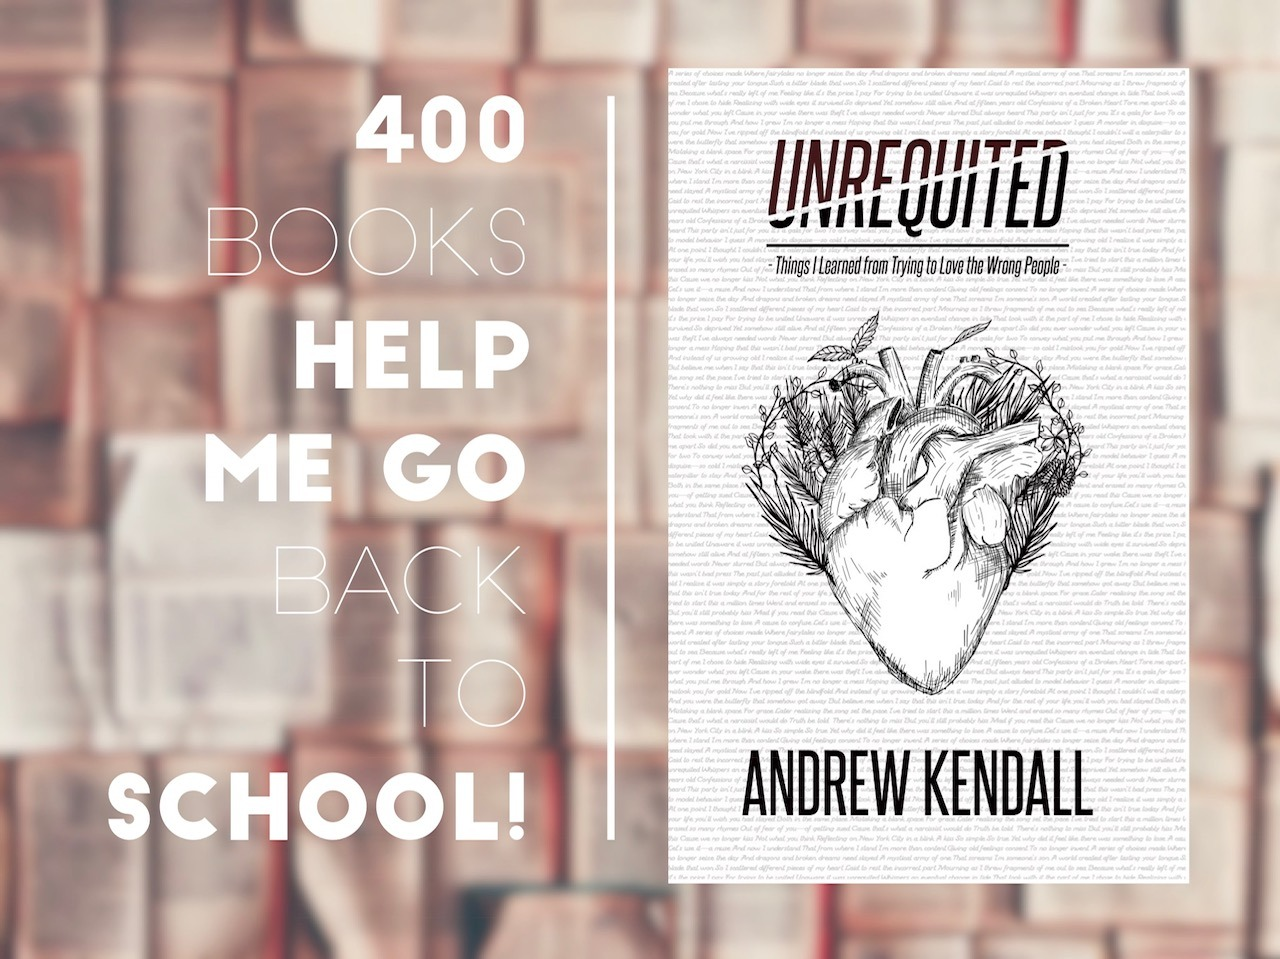 Unrequited Back To School Promotion